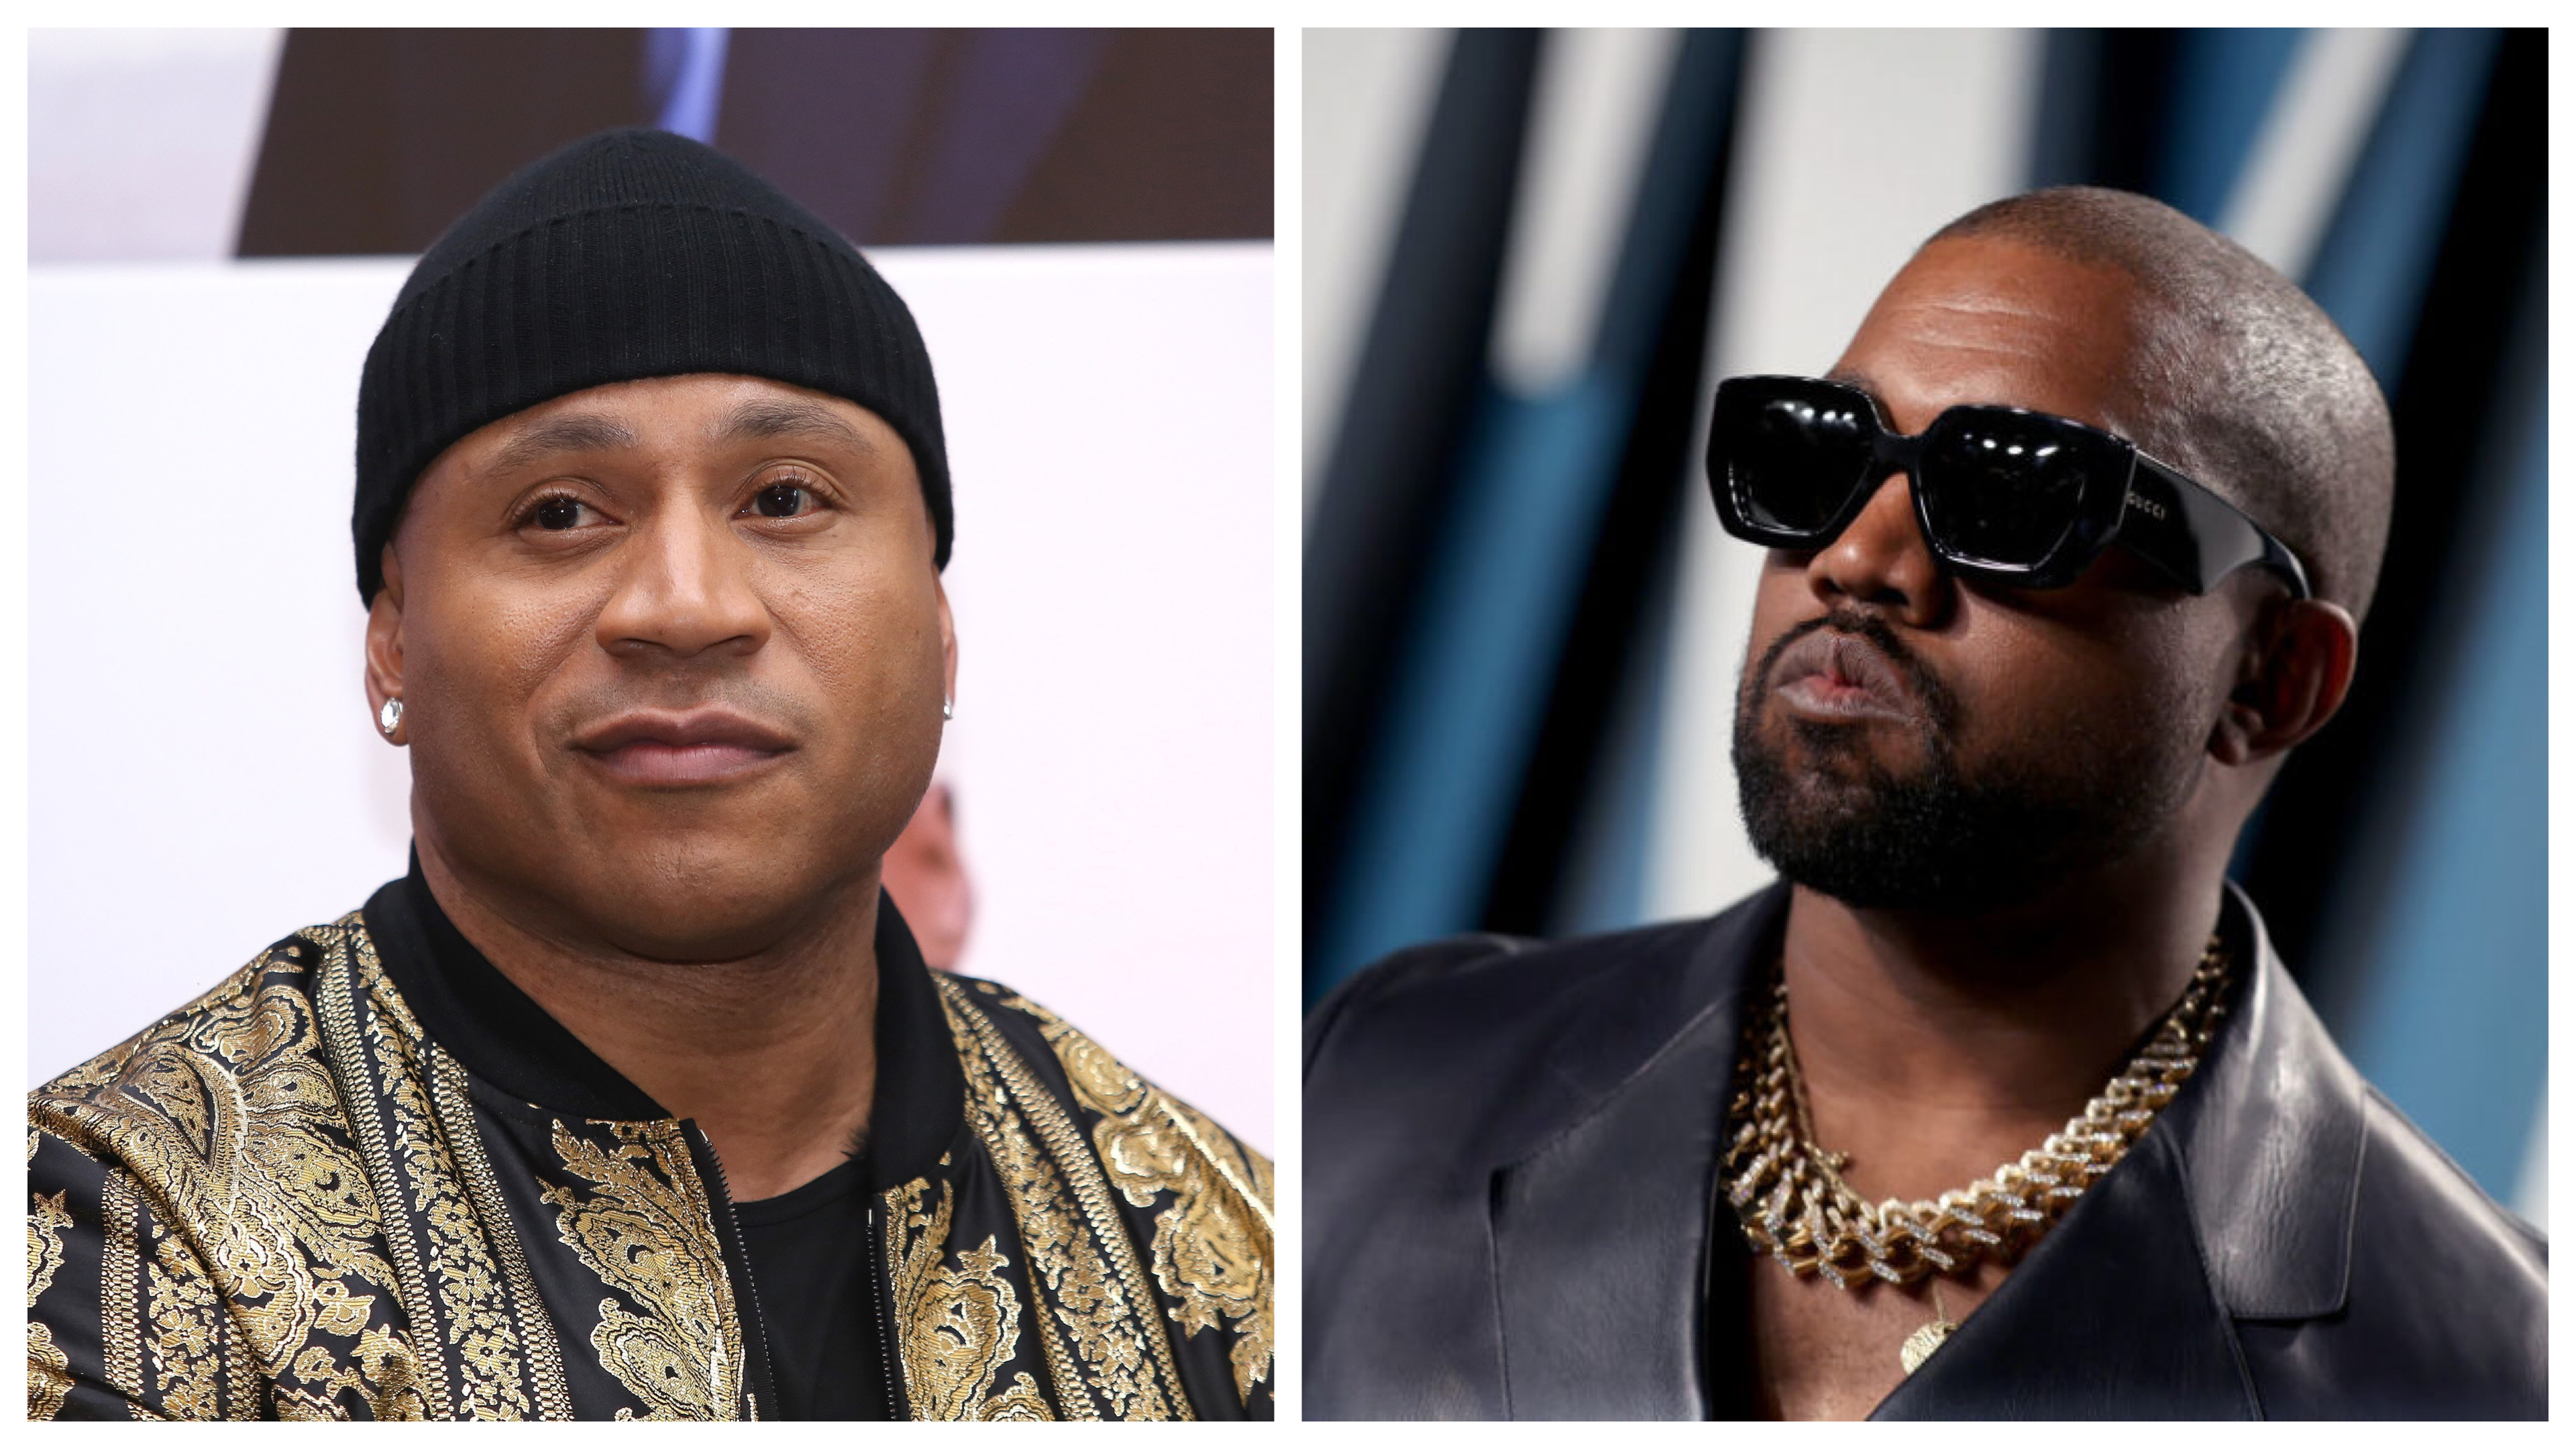 LL Cool J and Kanye West